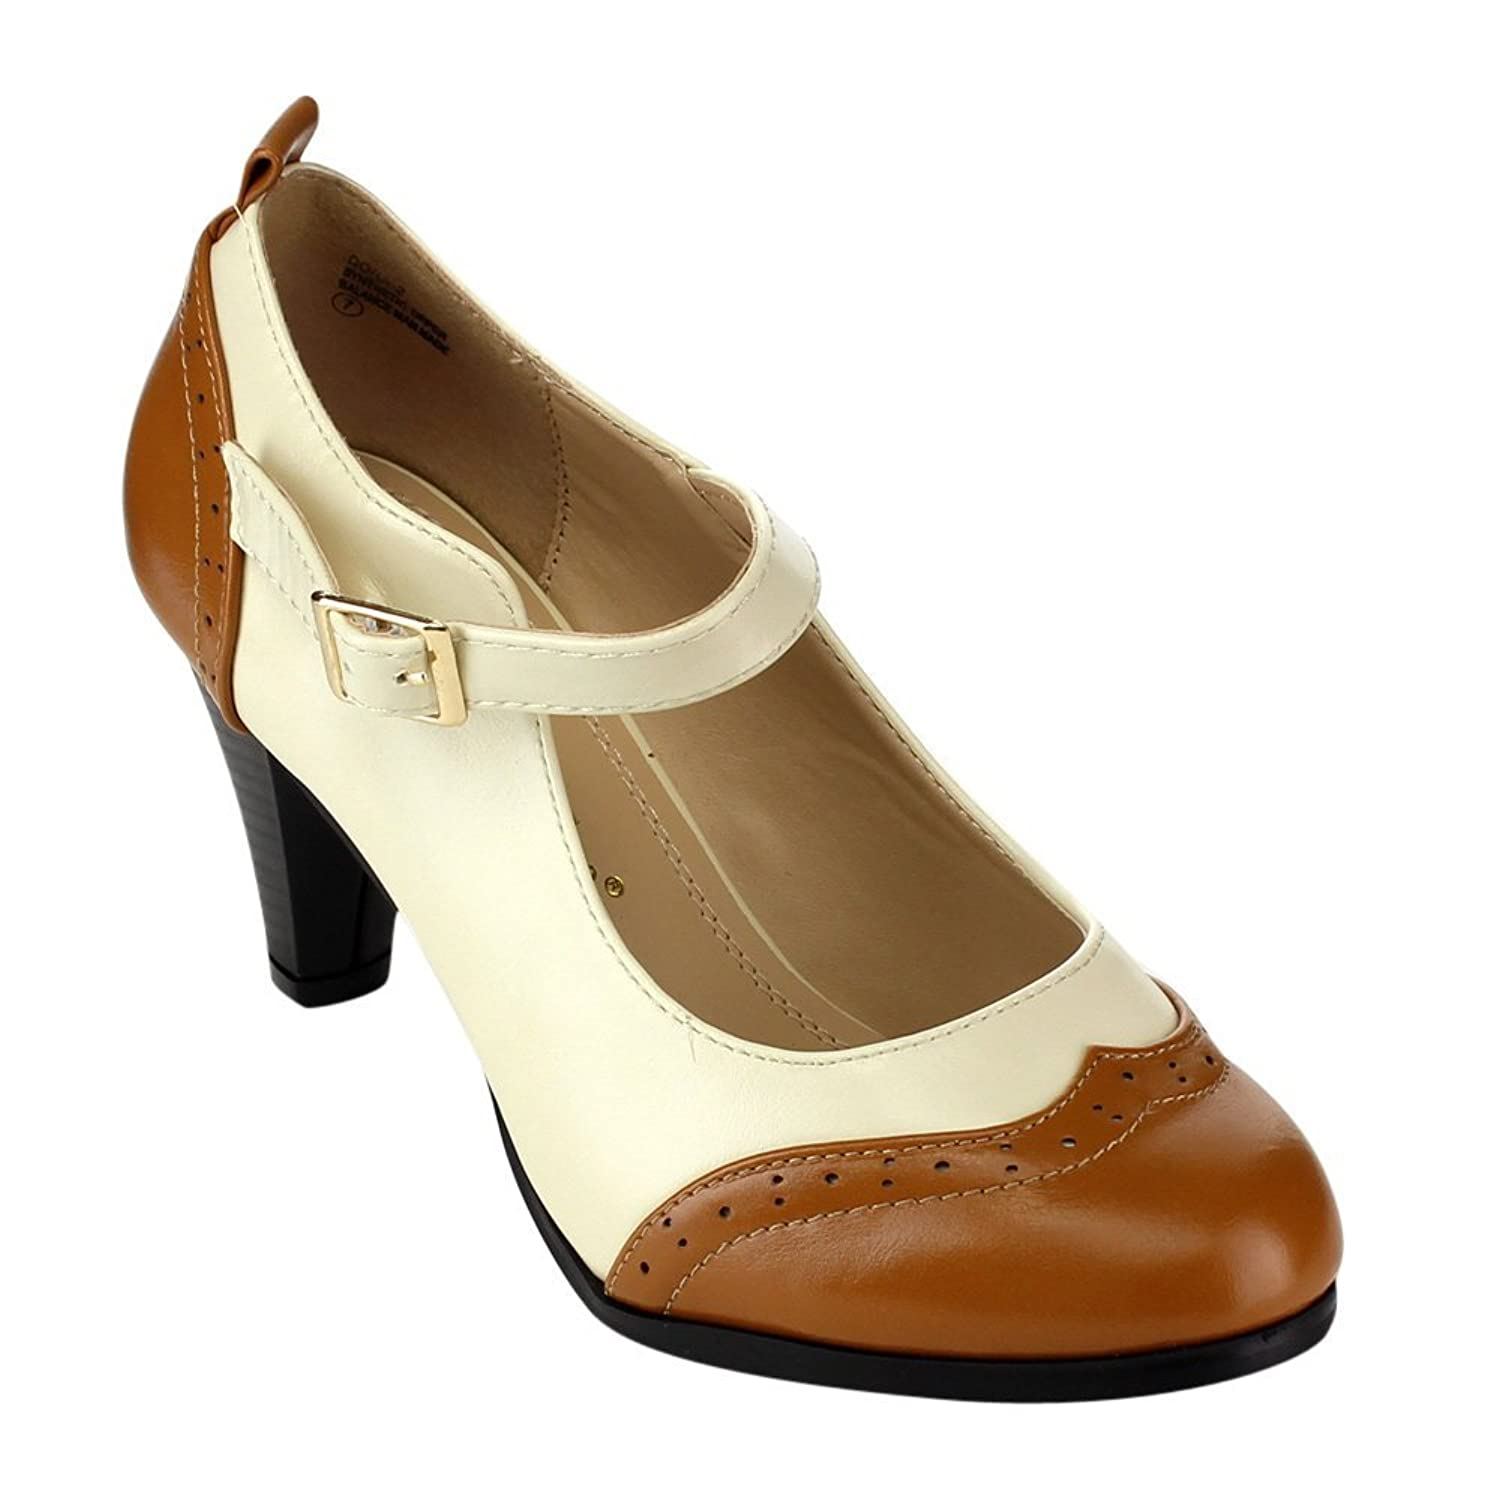 1920s Fashion & Clothing | Roaring 20s Attire Chase & Chloe Dora-2 Womens Round Toe Two Tone Mary Jane Pumps $32.99 AT vintagedancer.com